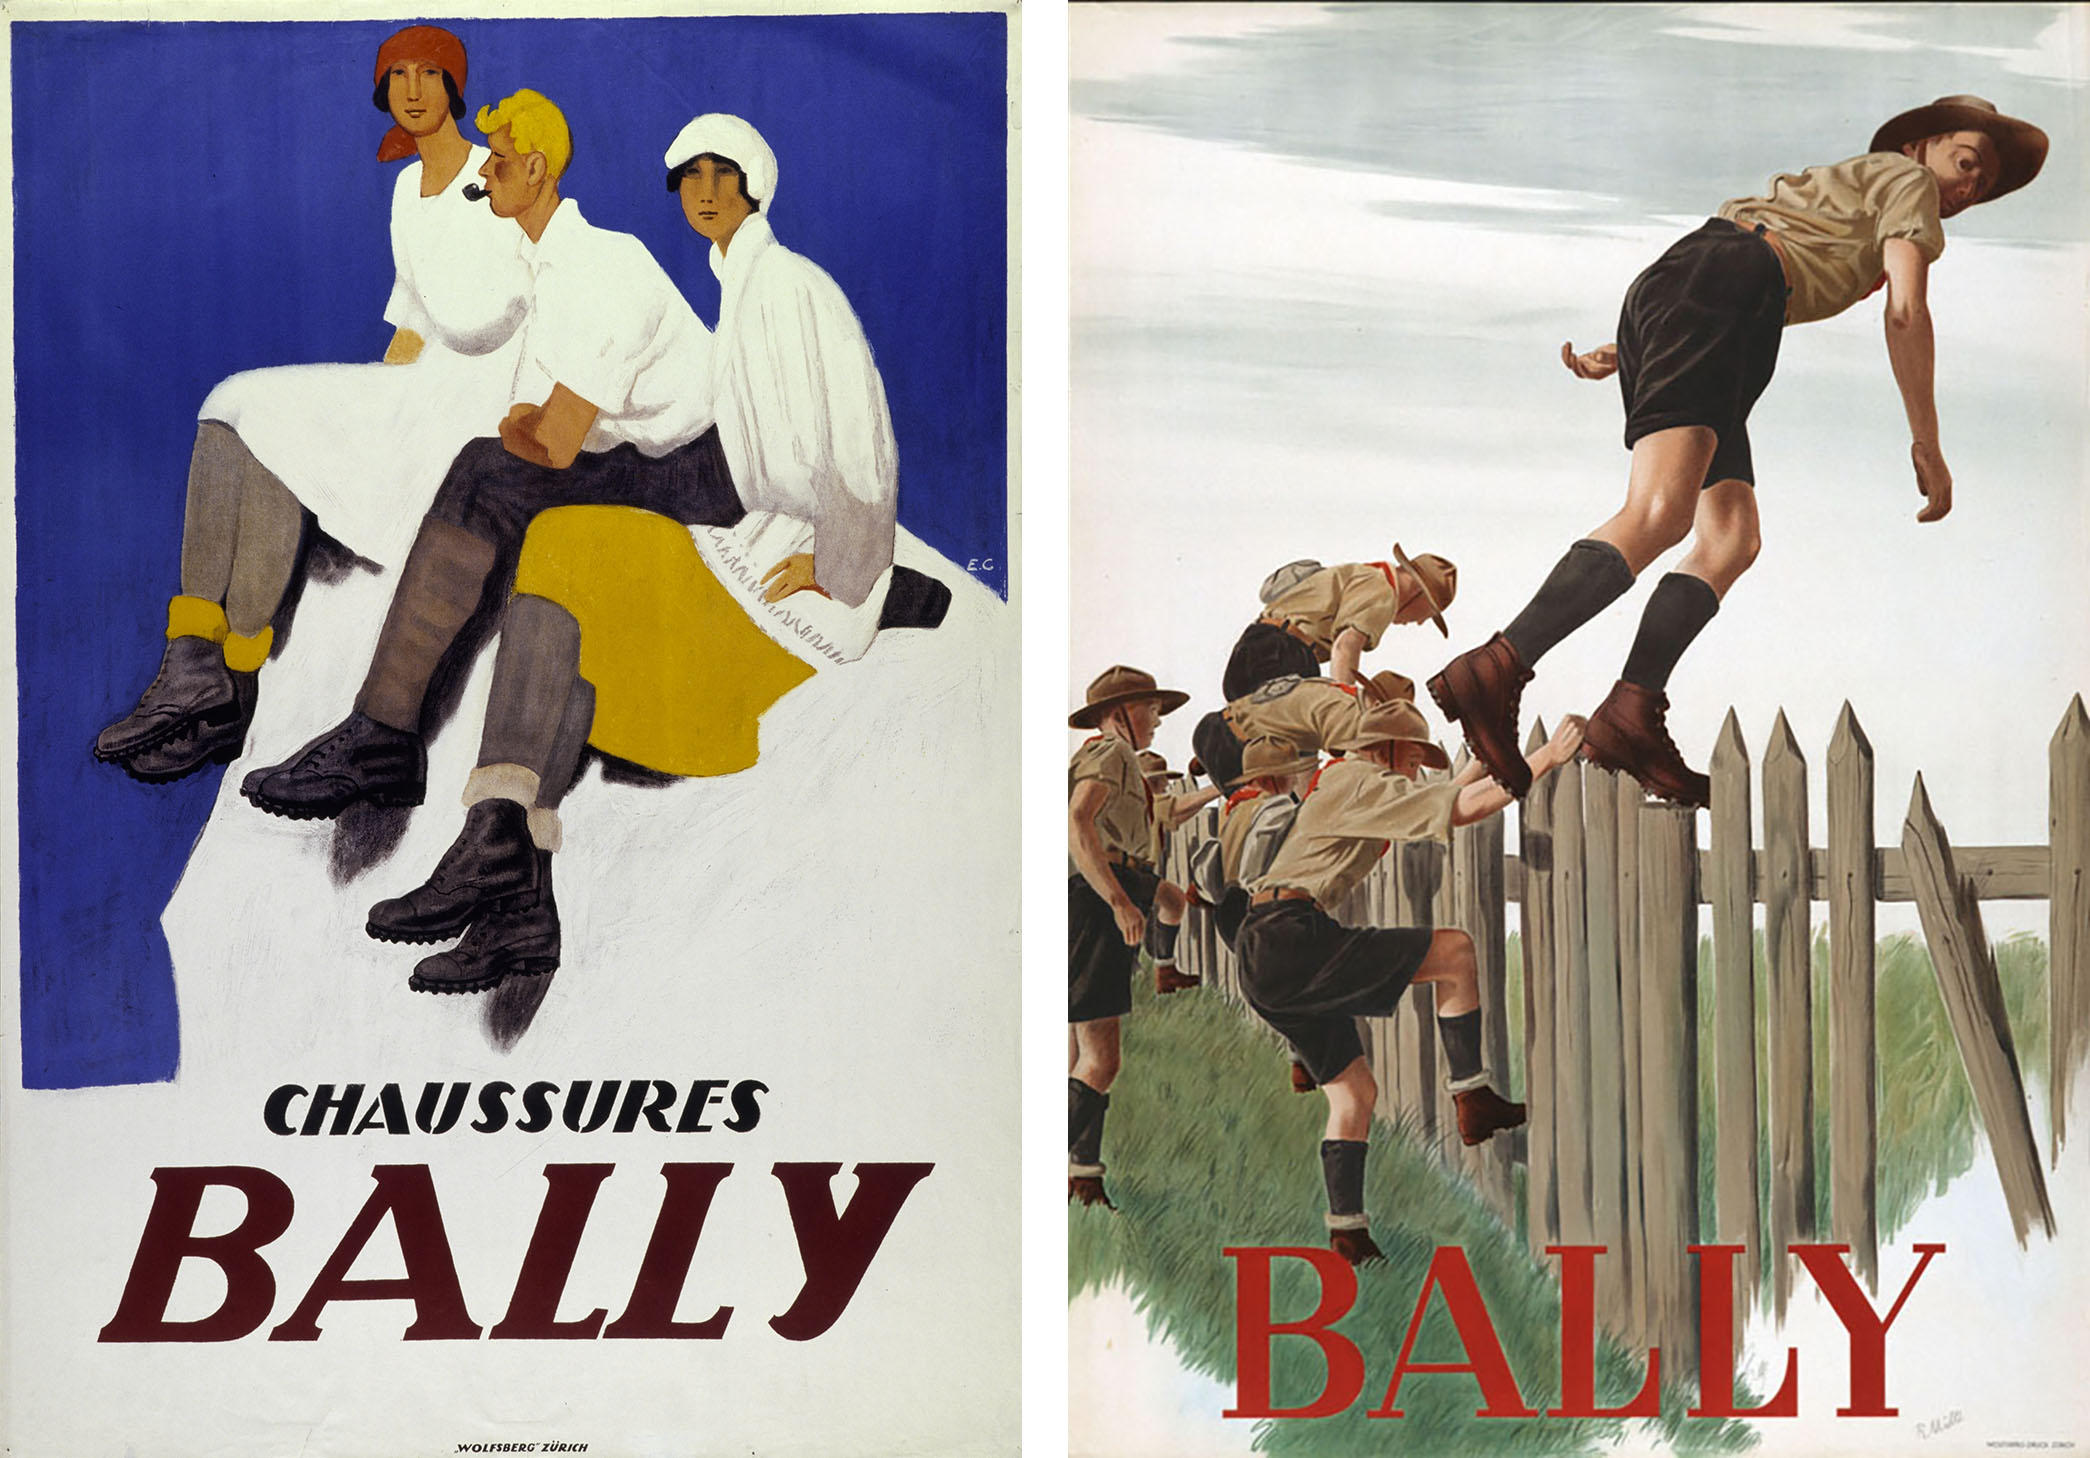 Bally posters (1924 and 1947)